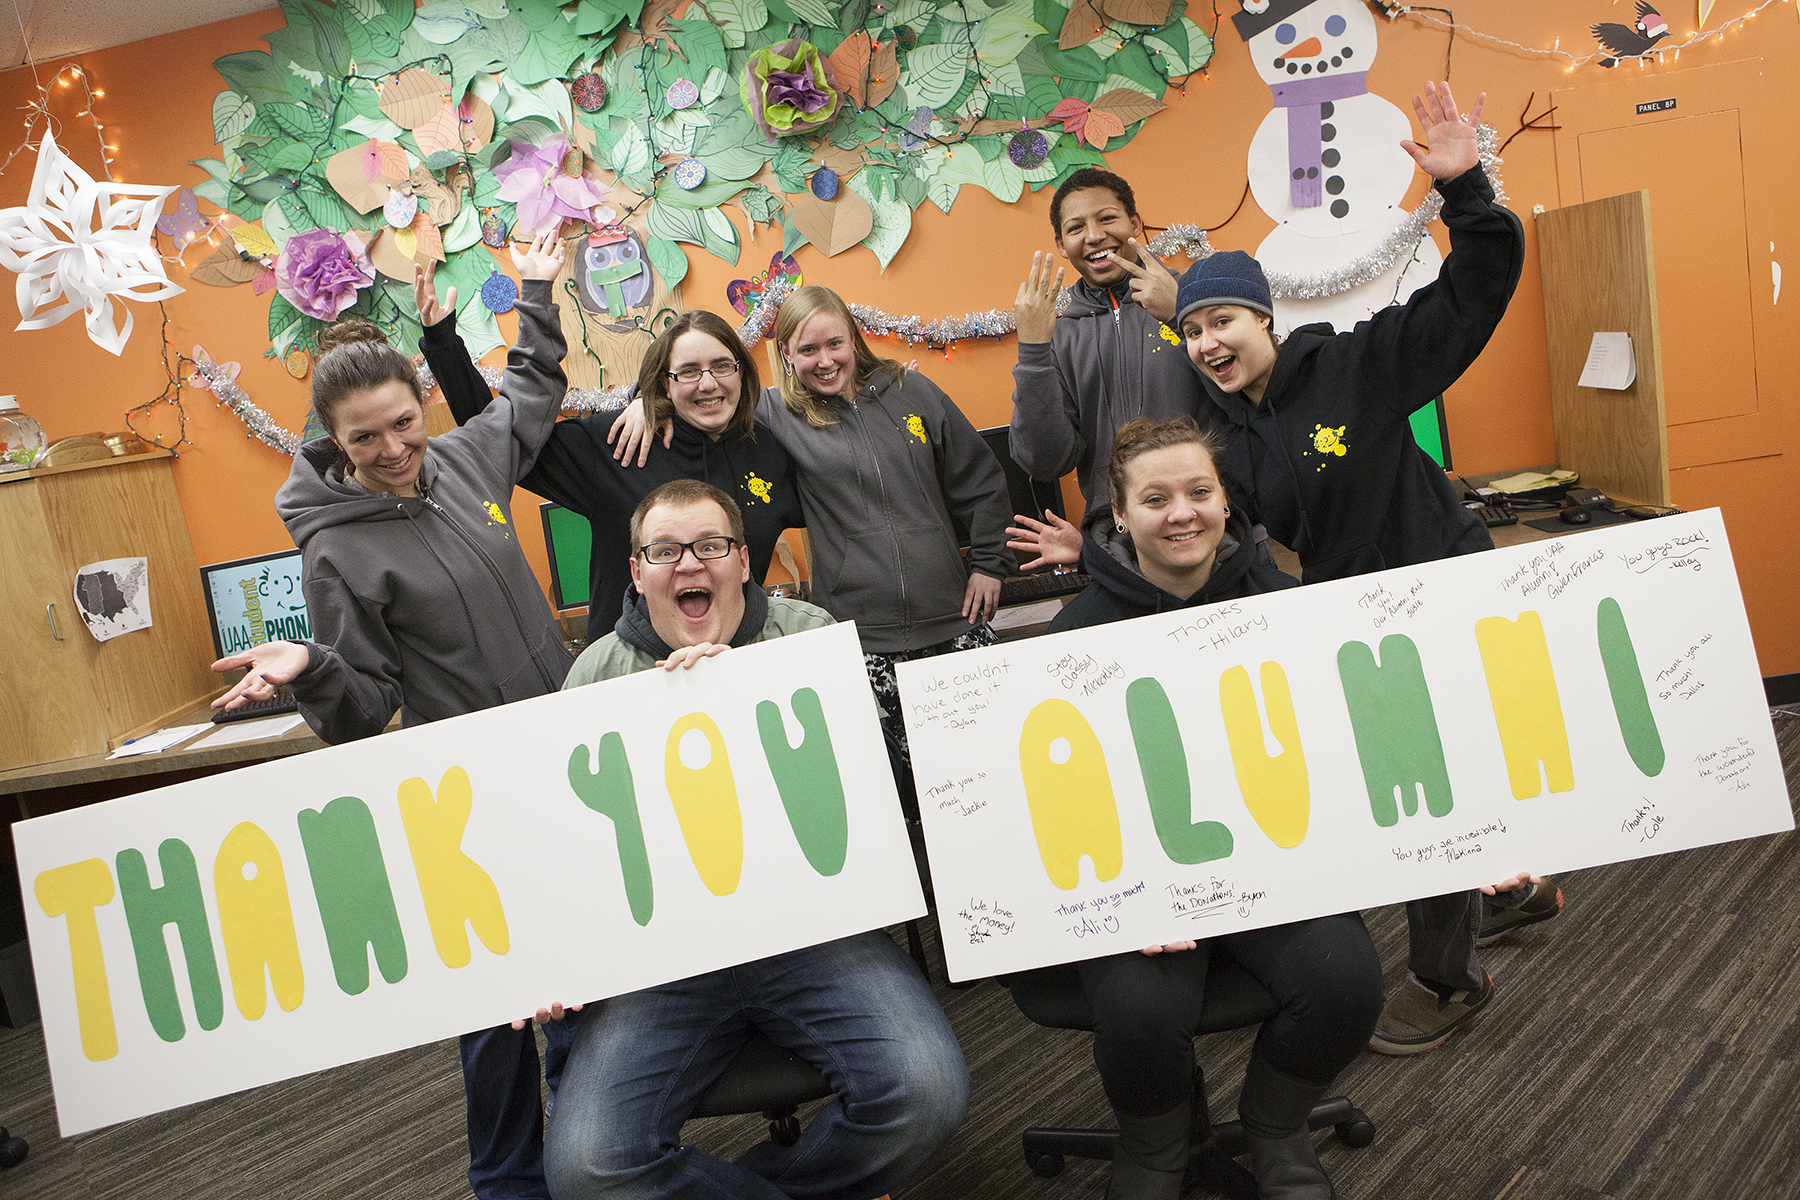 UAA Phonathon students holding Thank You sign